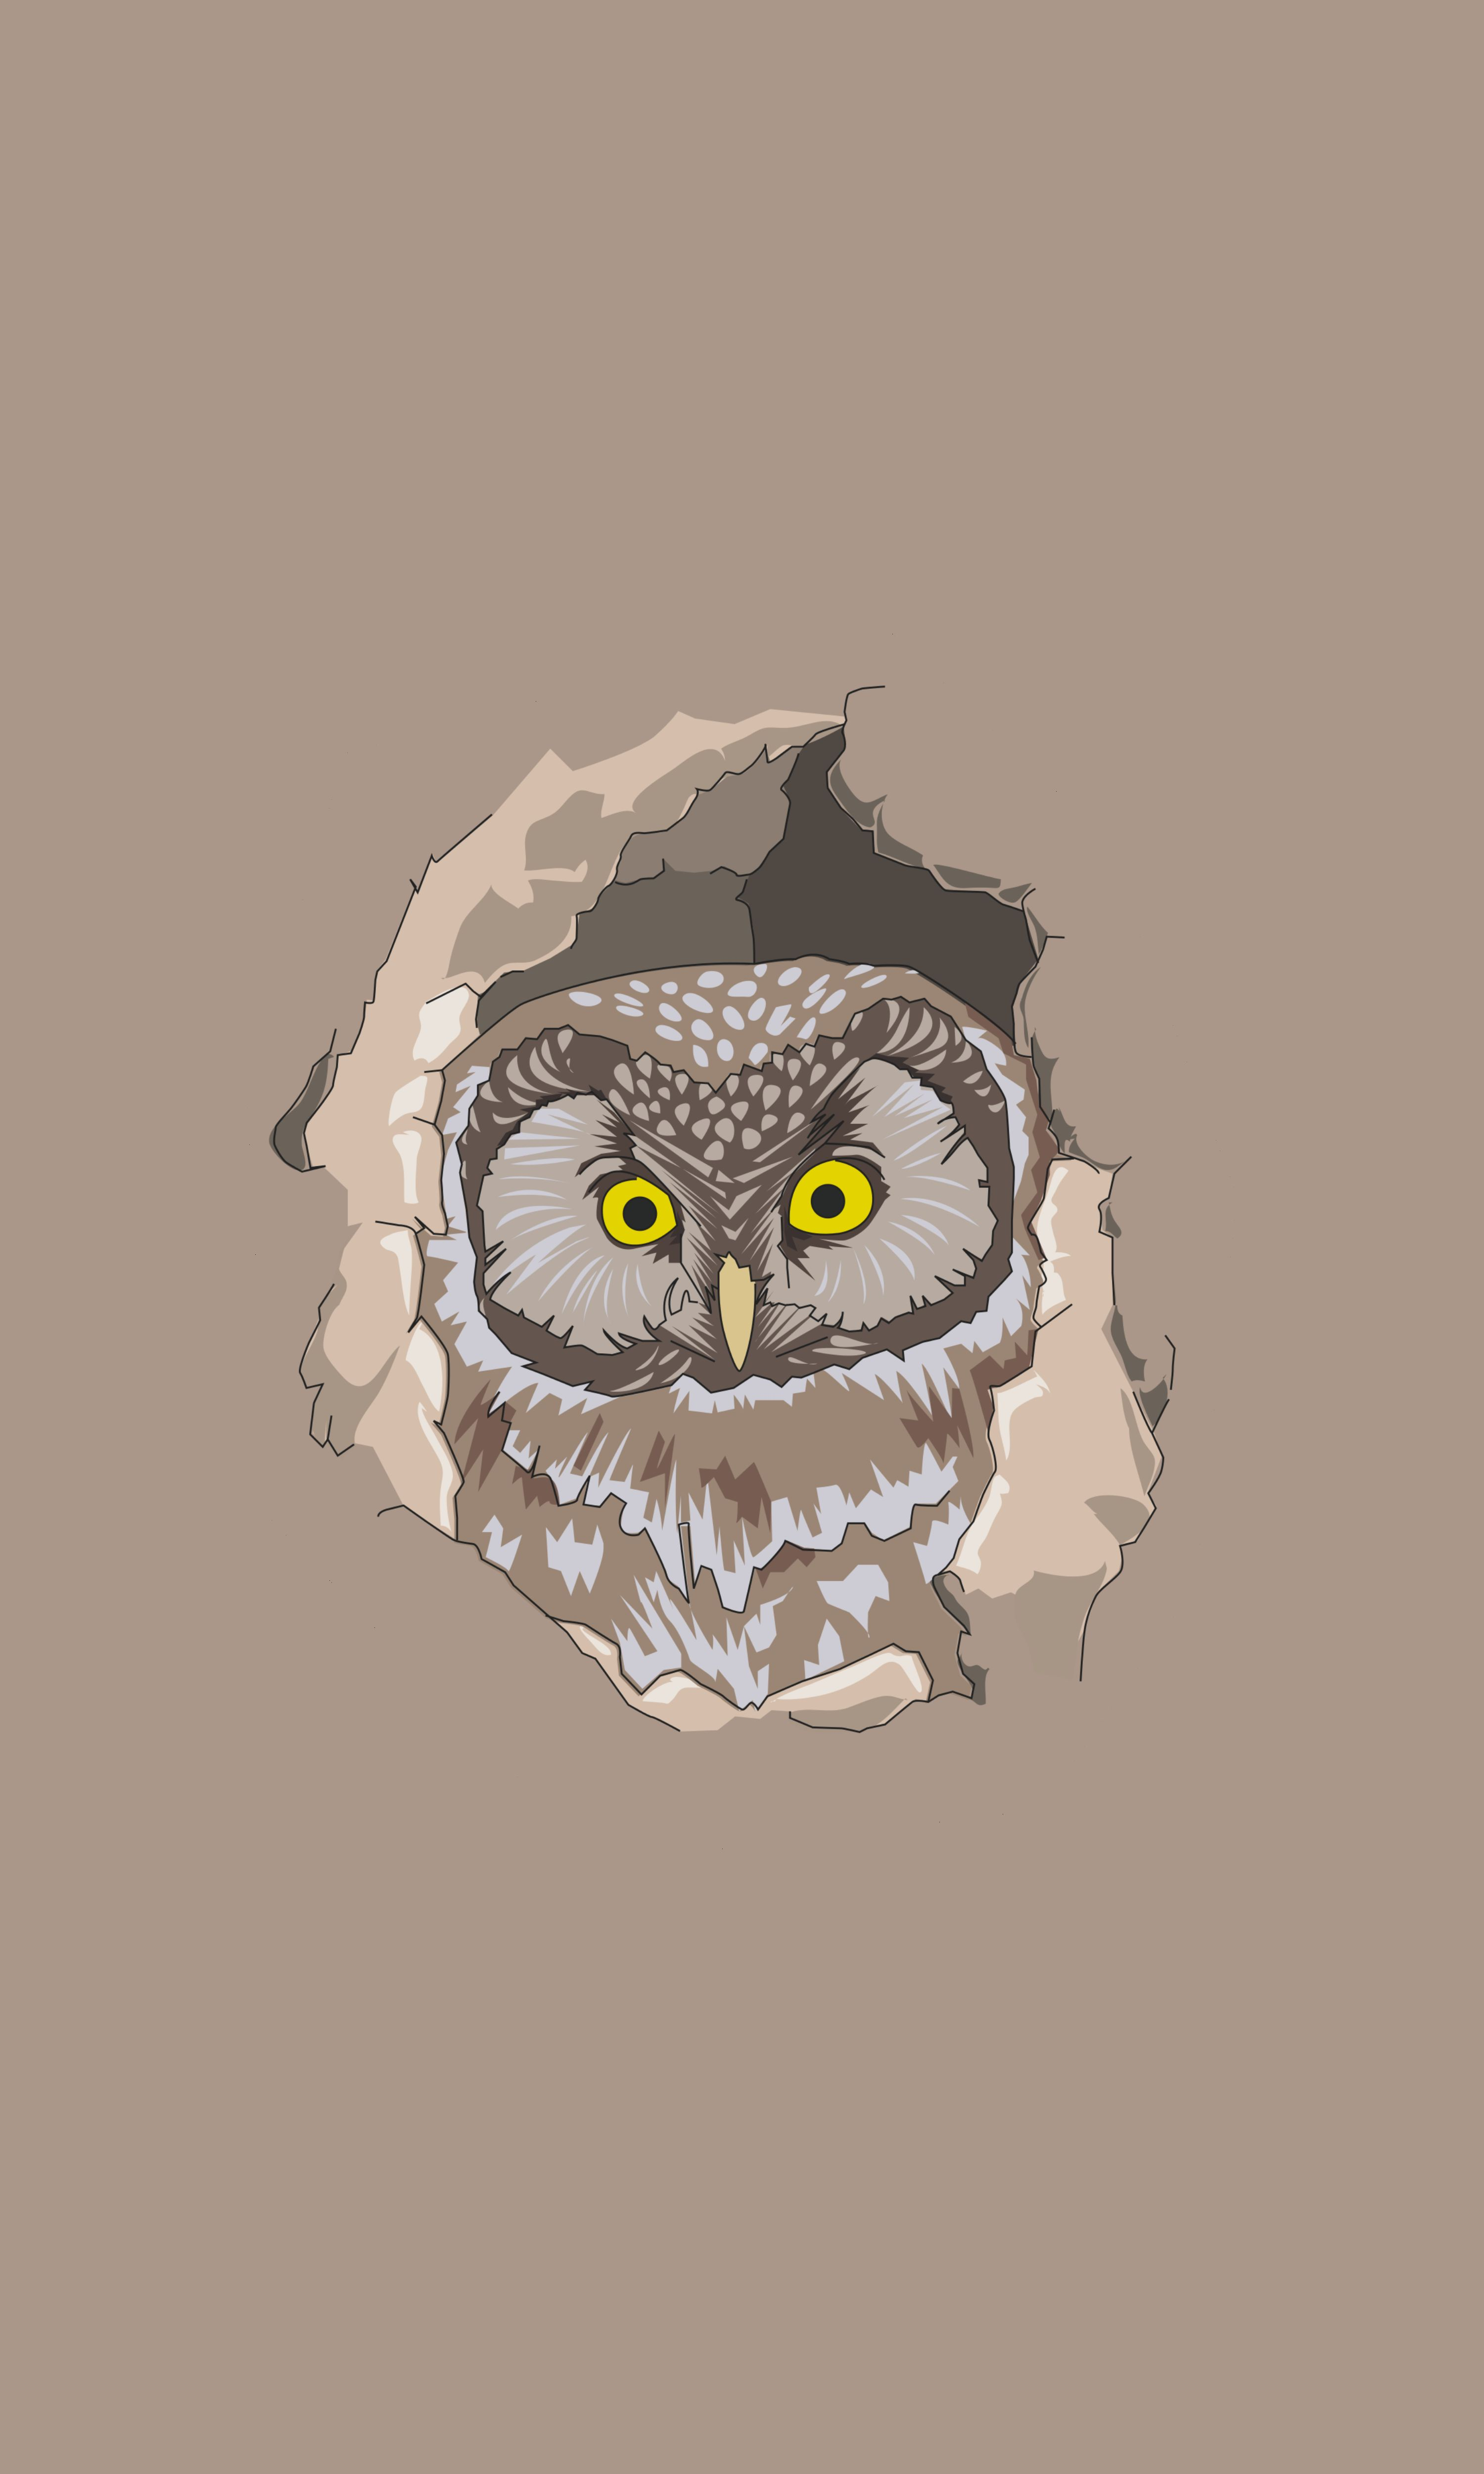 144509 download wallpaper Vector, Owl, Peek Out, Look Out, Art screensavers and pictures for free